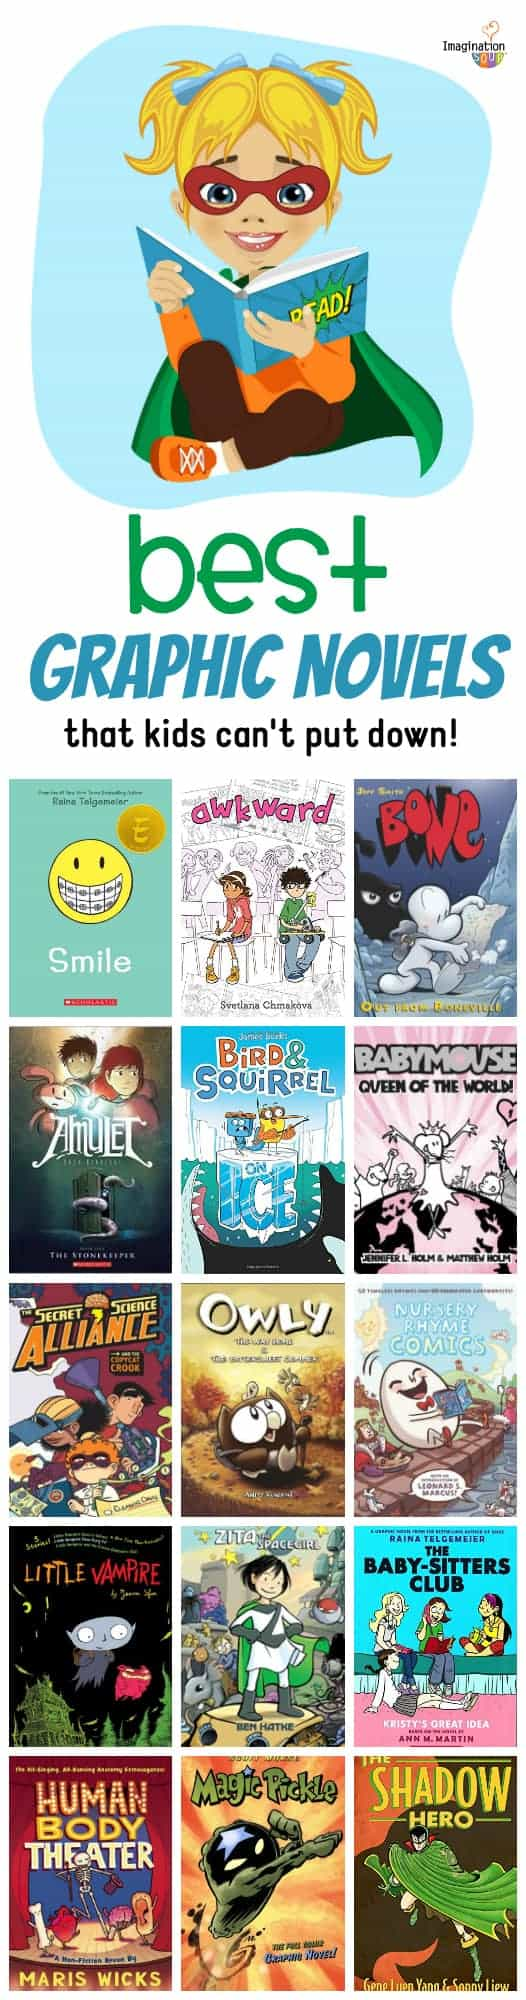 the best graphic novels and comics for kids!!